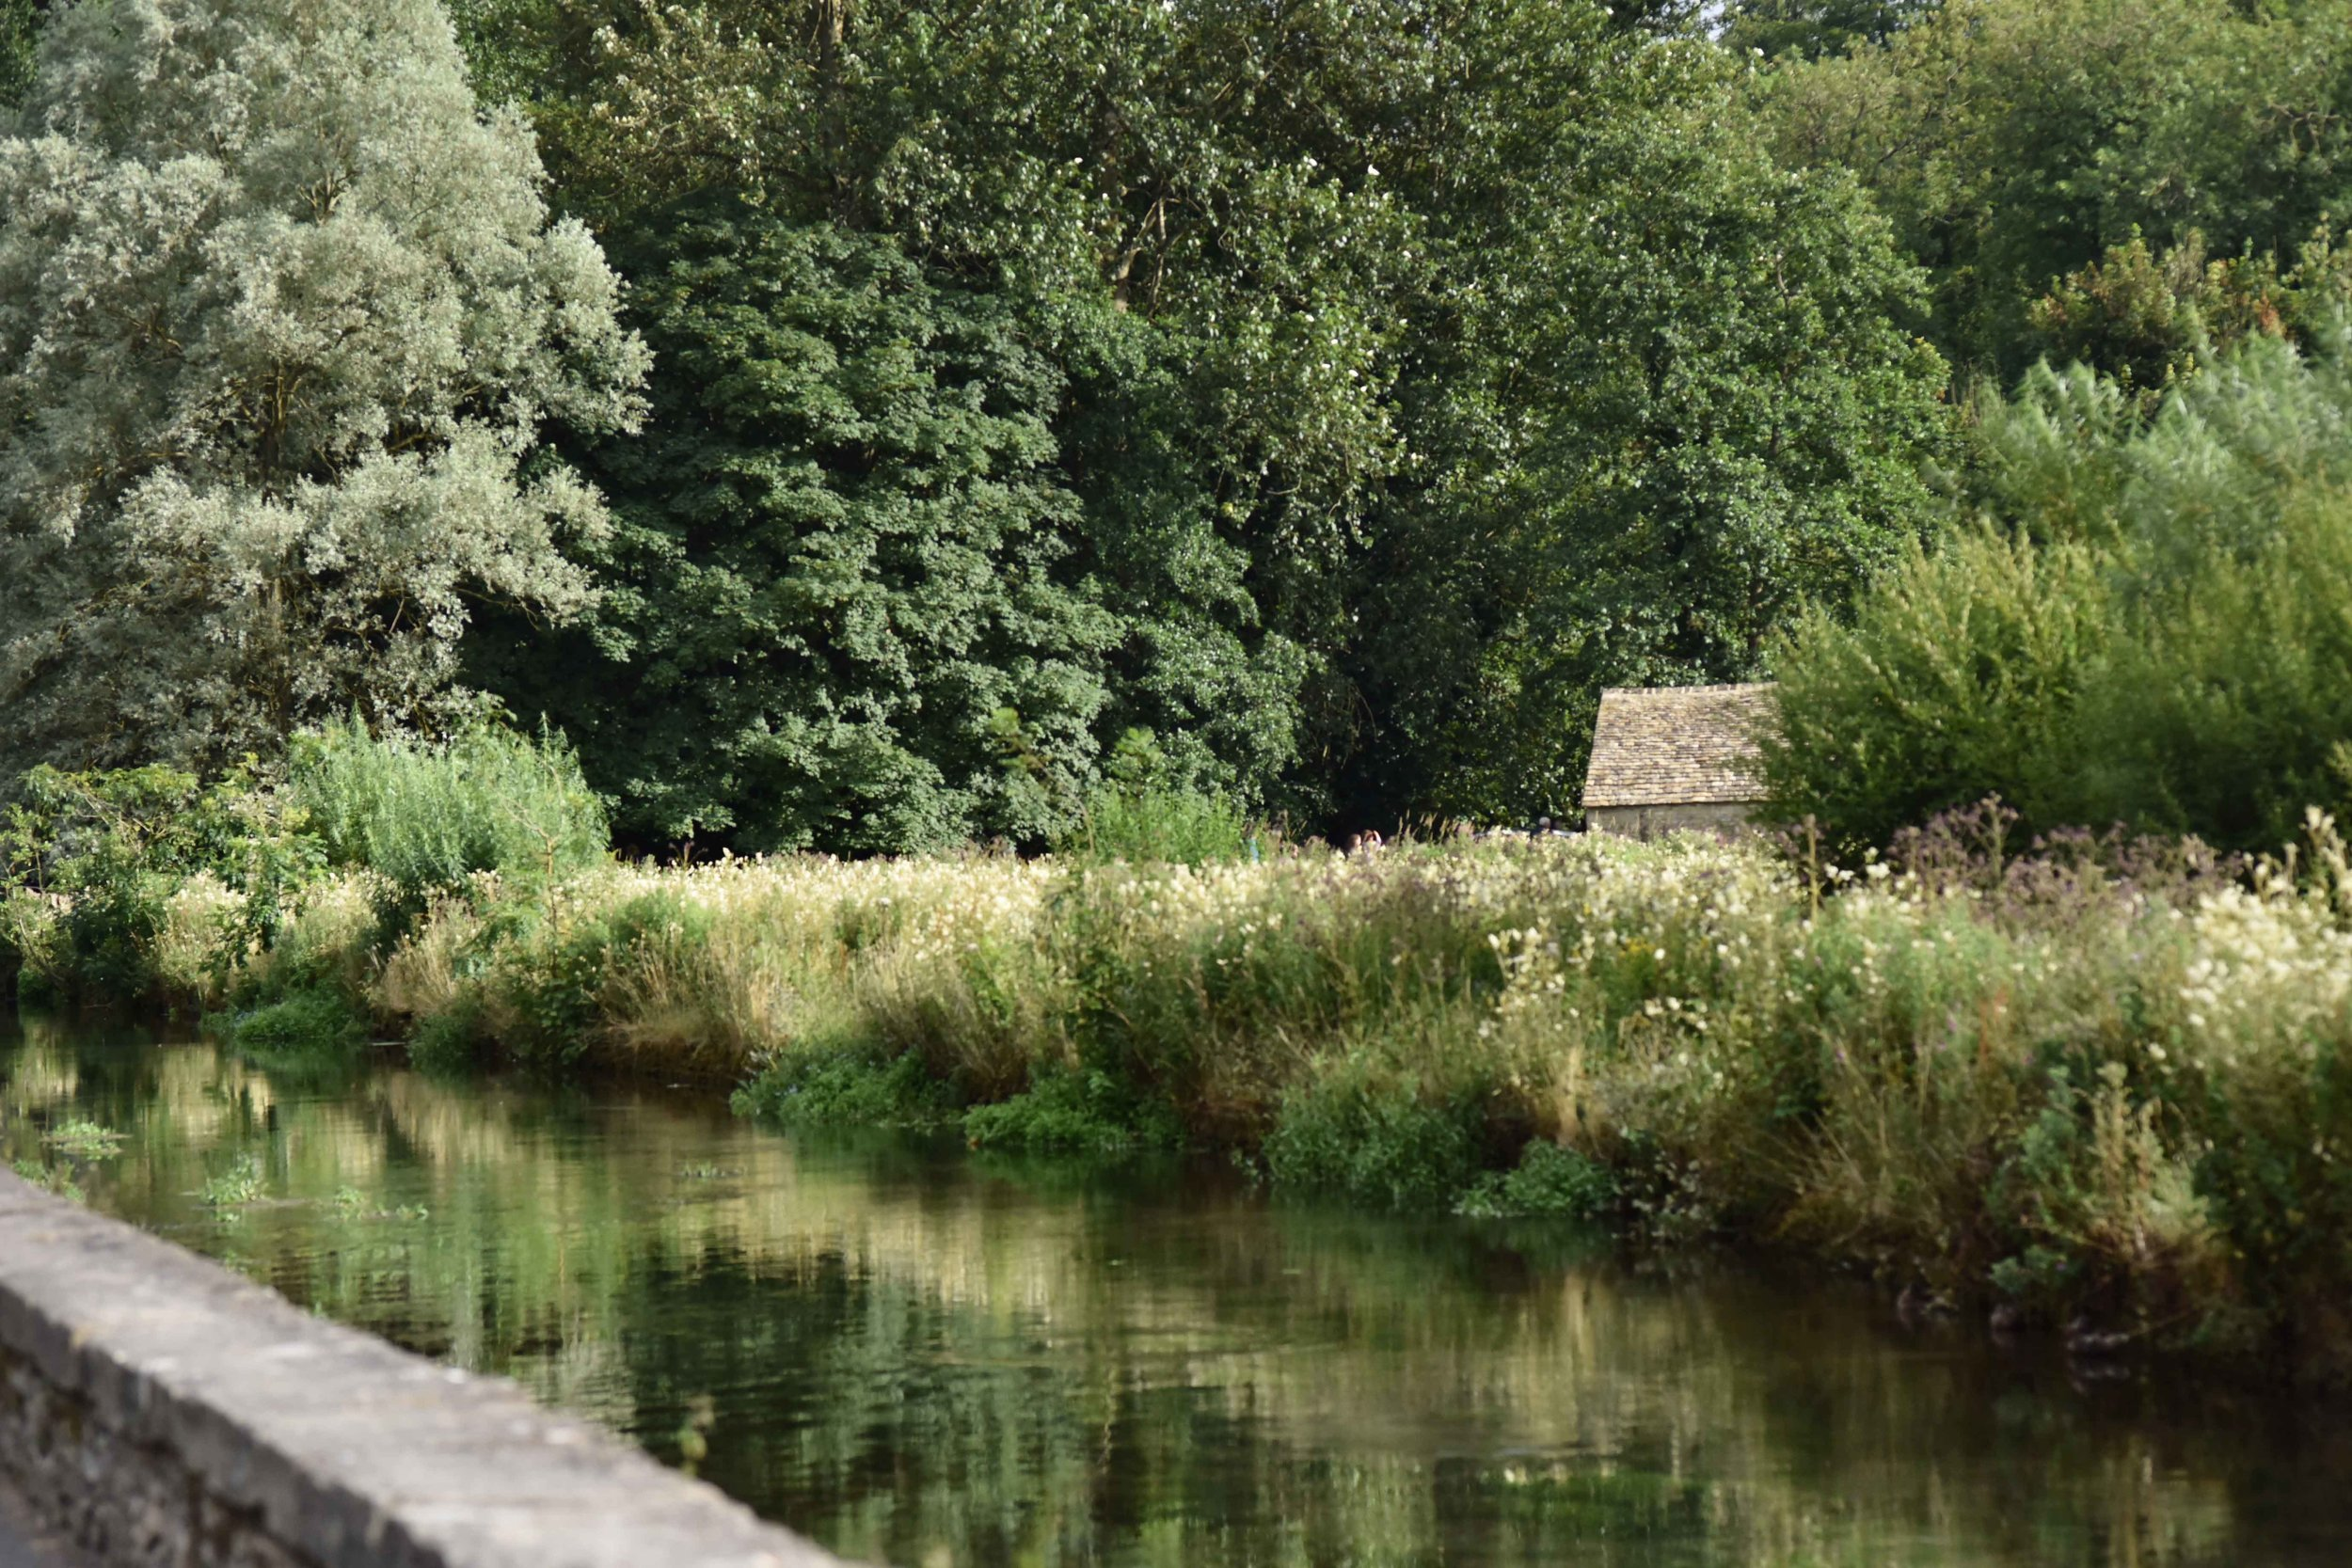 River Coln, Bibury, Cotswold, England. Image©sourcingstyle.com